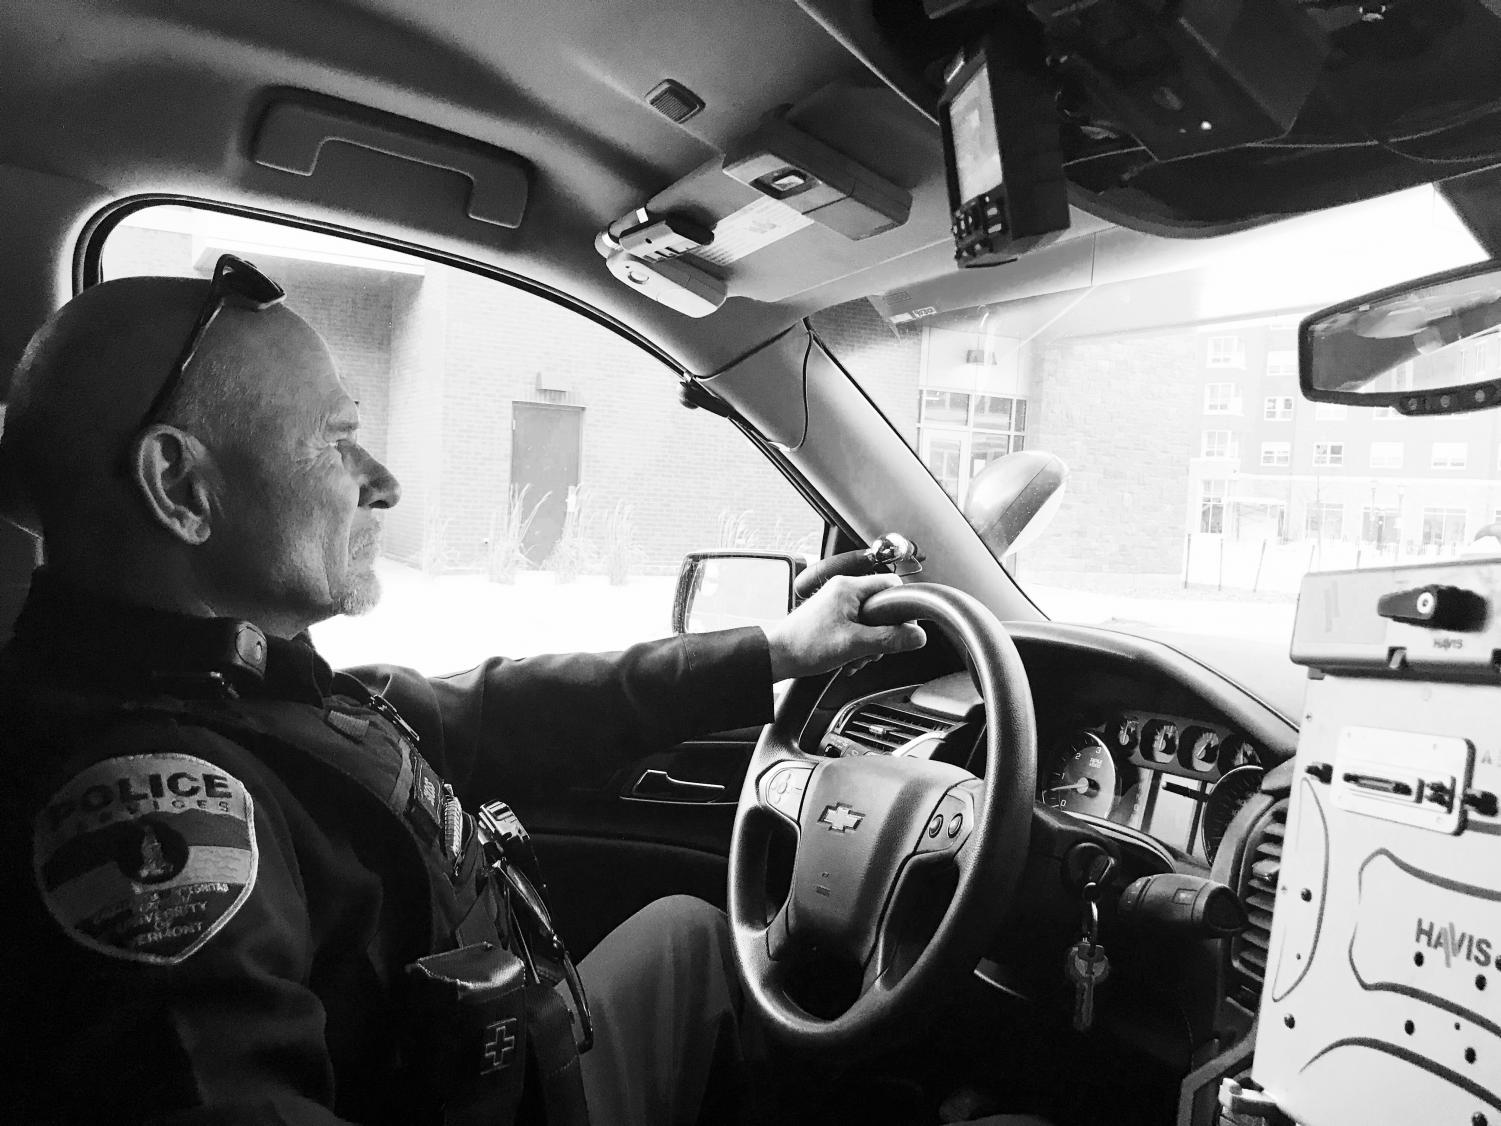 Officer Bill Scioss of UVM police services patrols the campus looking for suspicious activity. UVM police officers respond to emergency calls on campus, but also perform daily safety walkthroughs of buildings and support on-campus events.